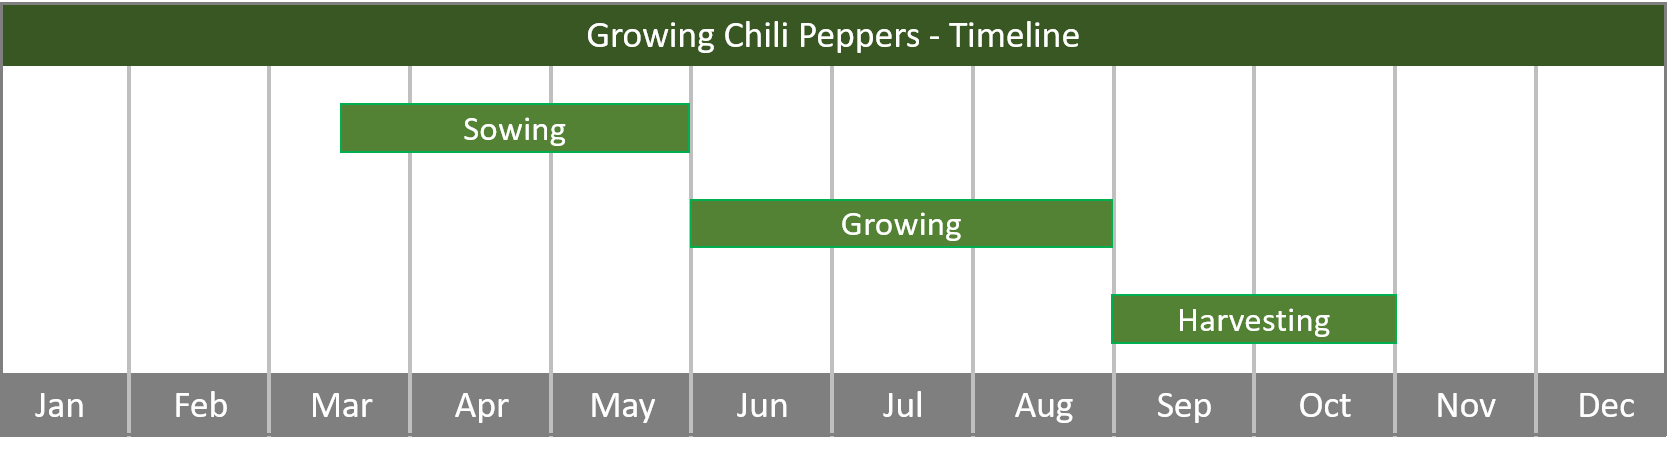 how to grow chili peppers from seed to harvest at home timeline